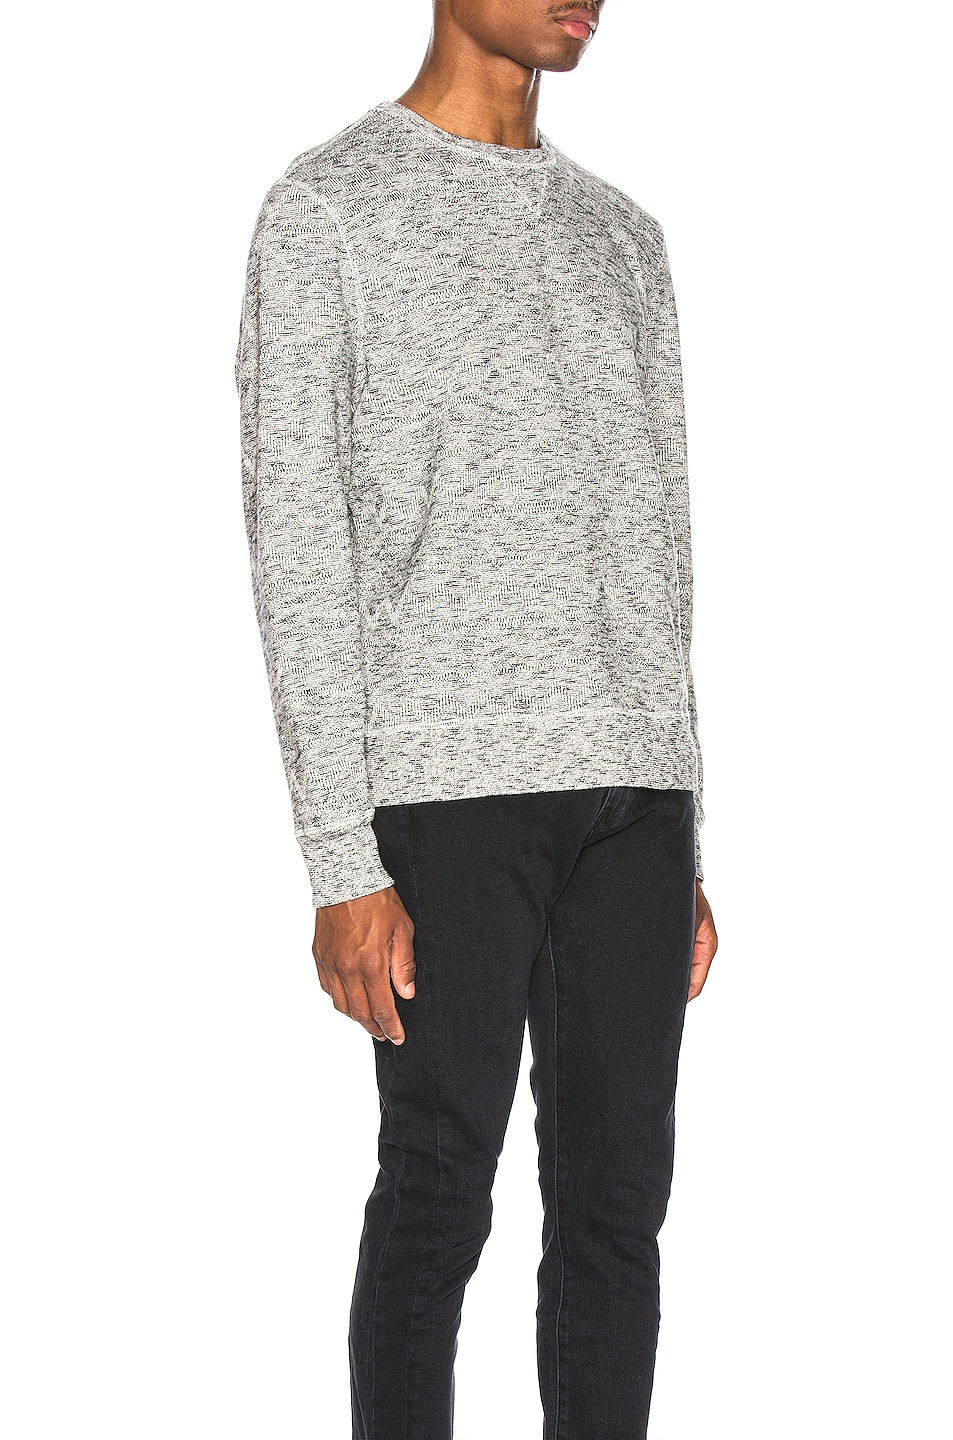 Image 2 of LEVI'S: Made & Crafted Geo Fleece Crewneck in Terry Grey